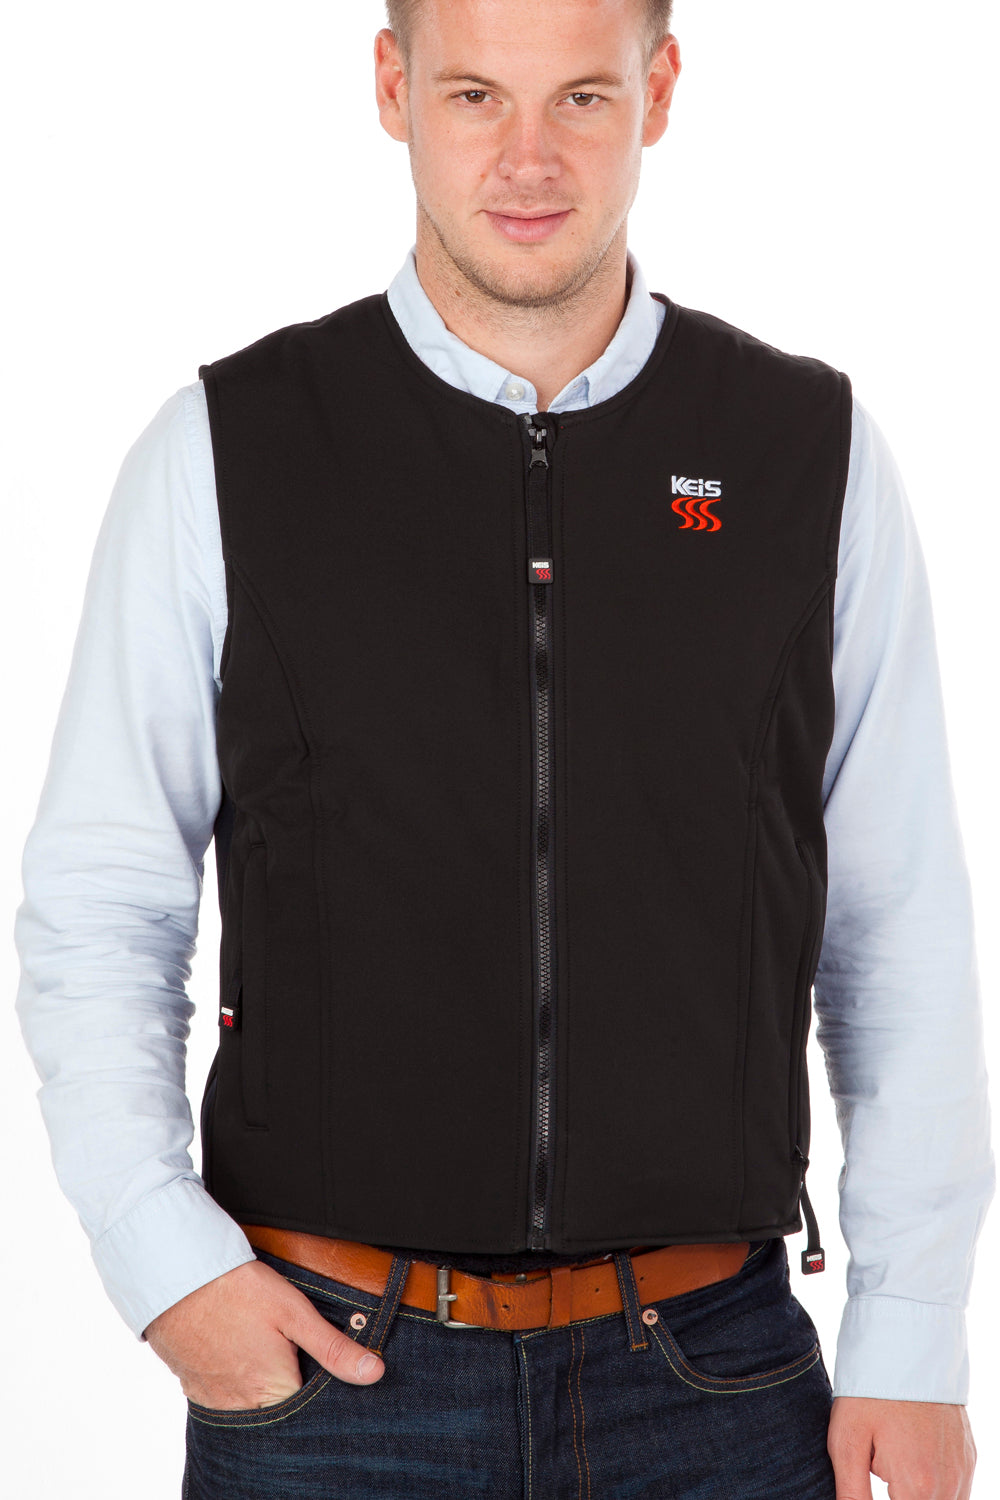 Keis heated vest is light-weight and very warm